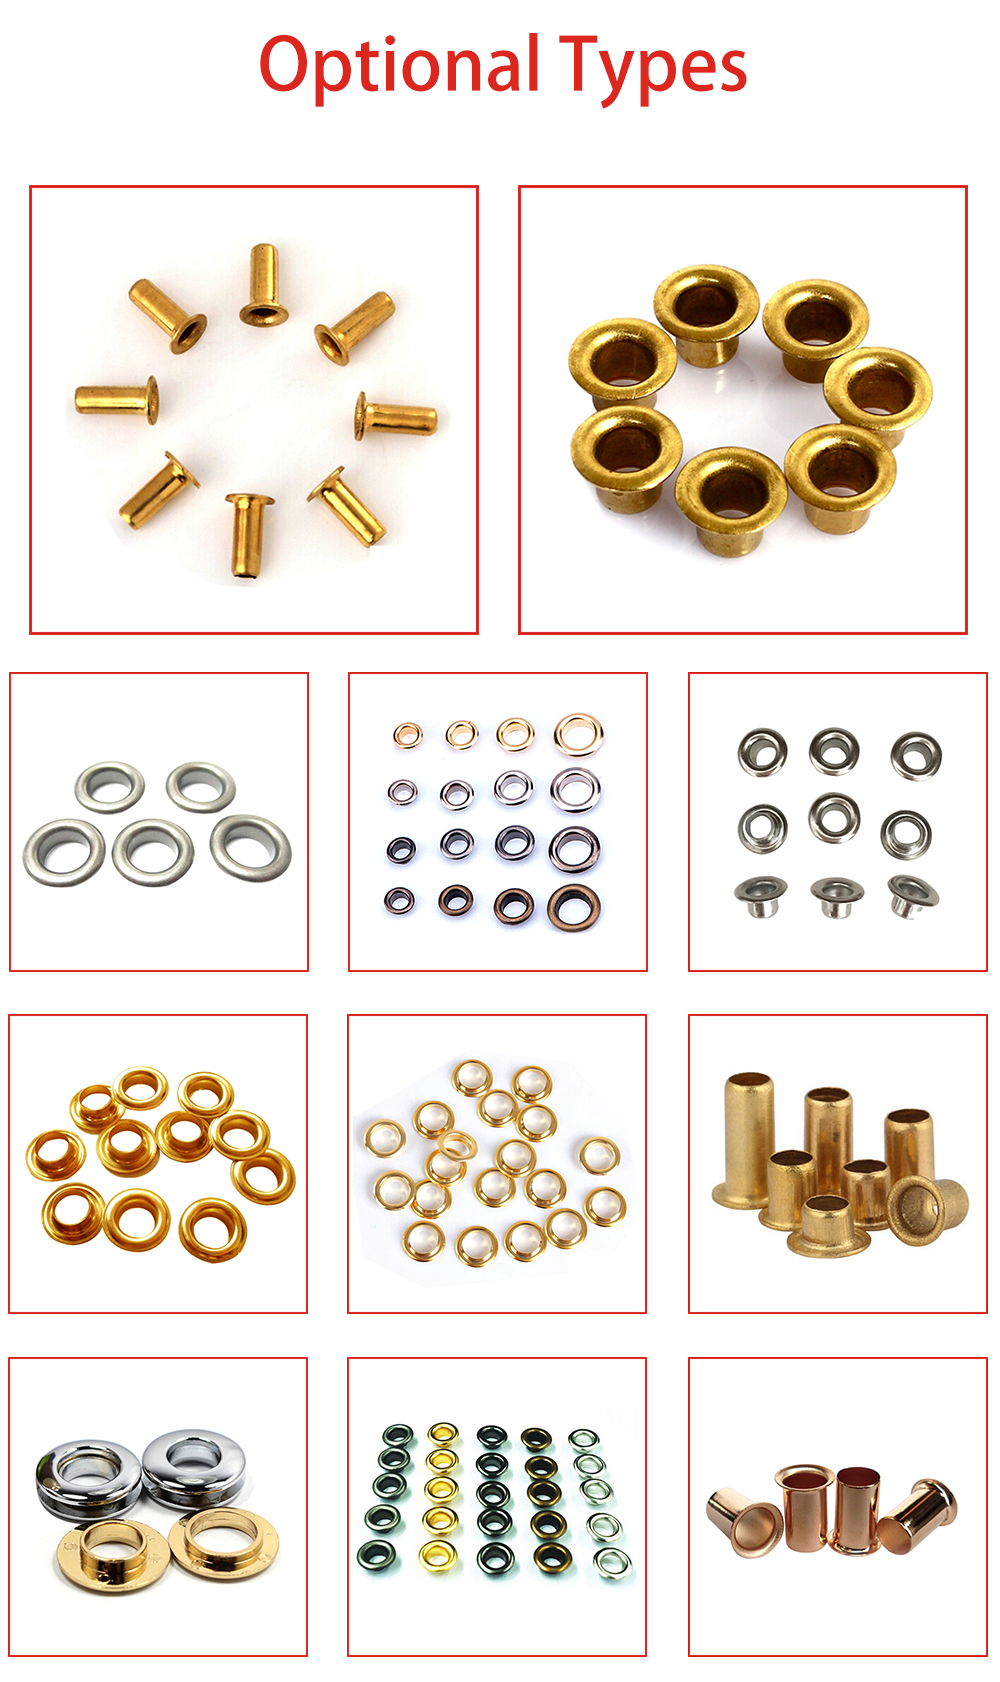 Hot Sale High Quality Competitive Price Nickel Free Metallic Eyelet Wholesale From China